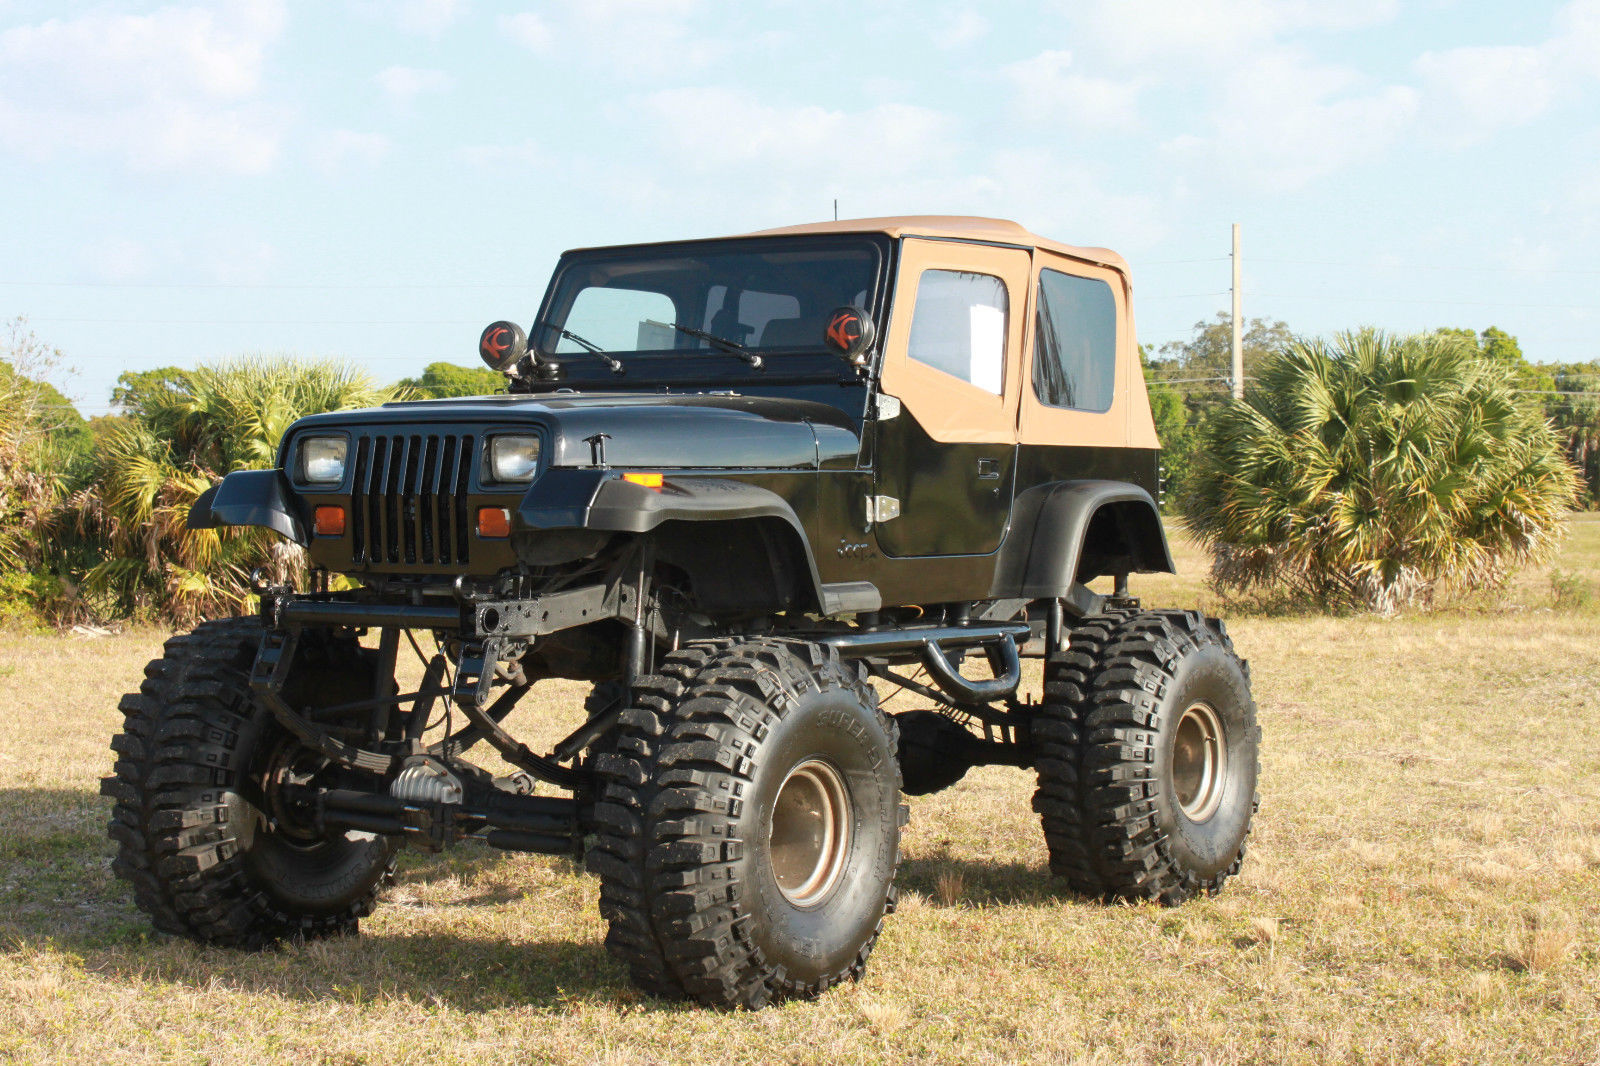 1993 lifted jeep wrangler 383 stroker monster 44 boggers free 1989 Jeep YJ Off-Road 1993 lifted jeep wrangler 383 stroker monster 44 boggers free delivery for sale in fort pierce florida united states